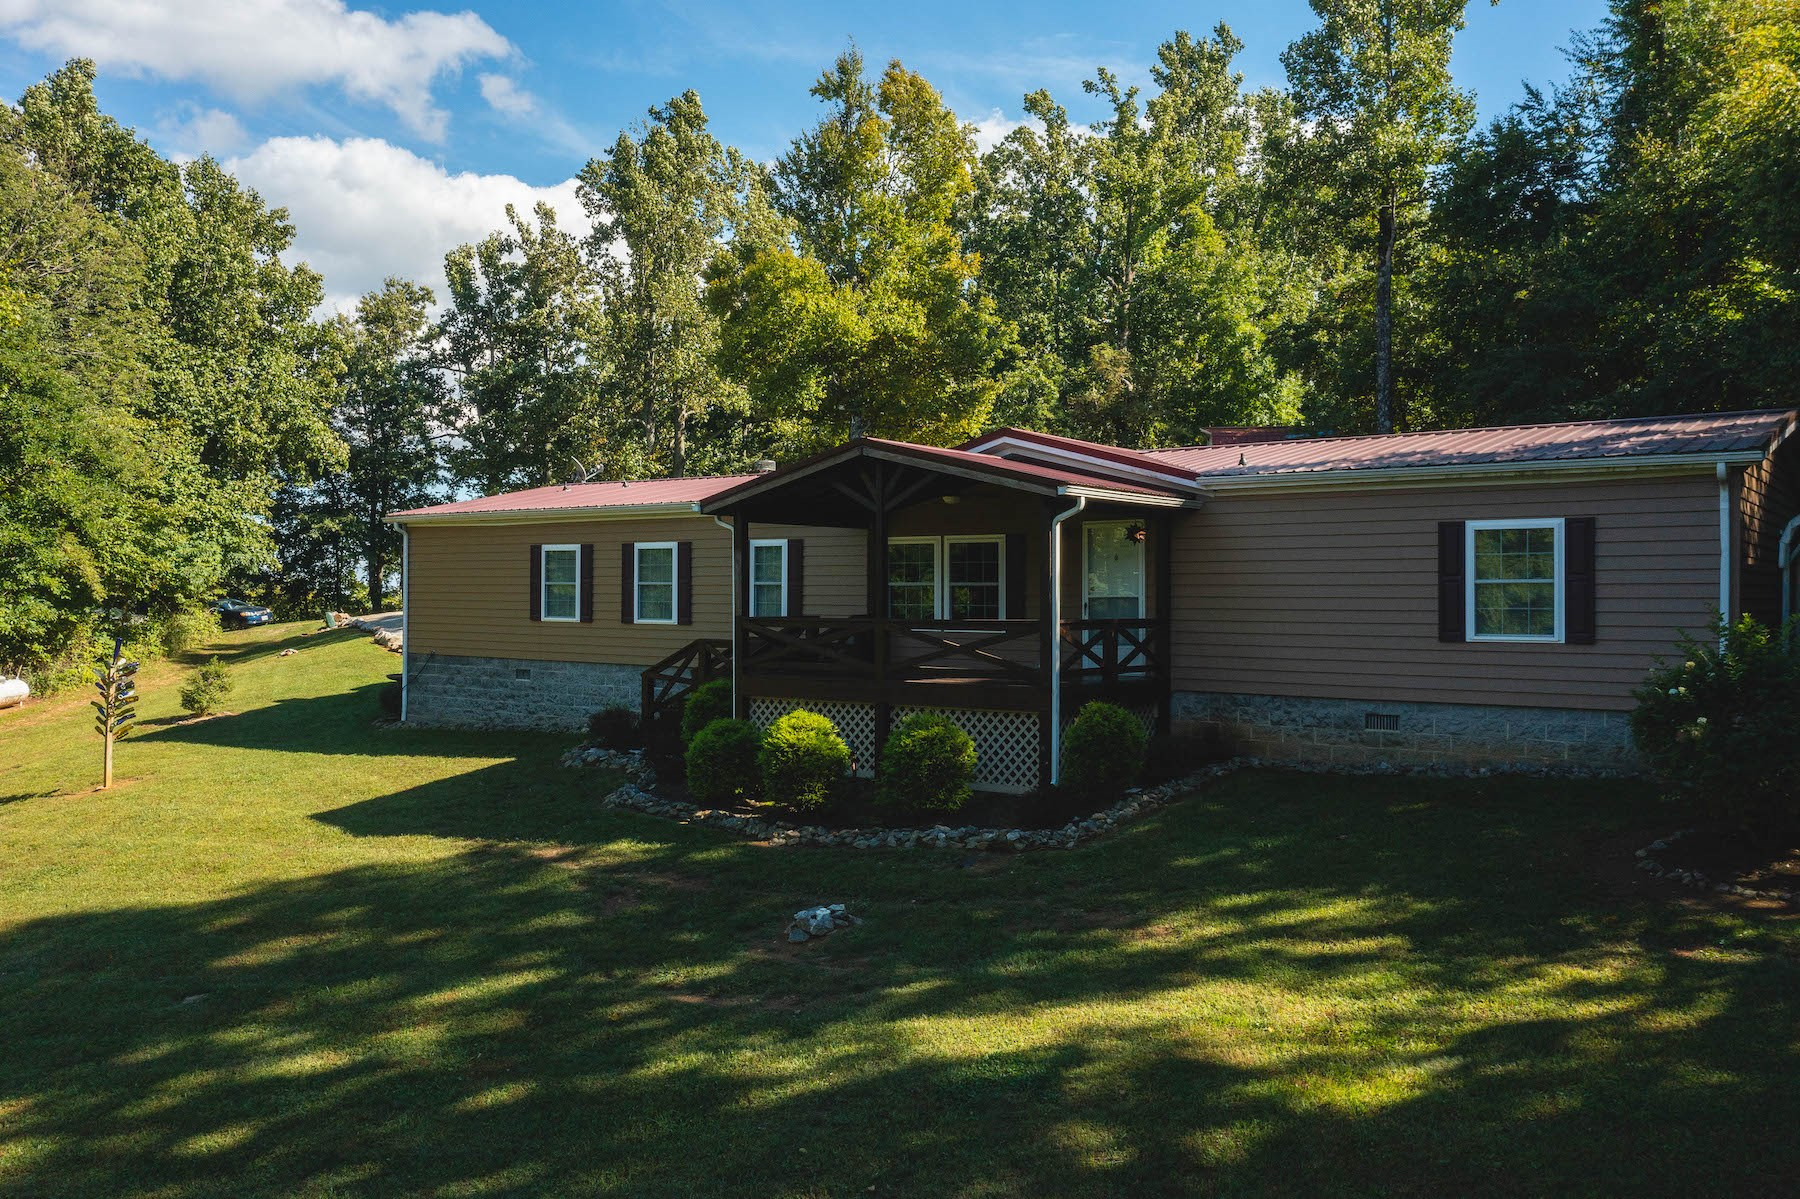 Country Home for Sale in Copper Hill VA